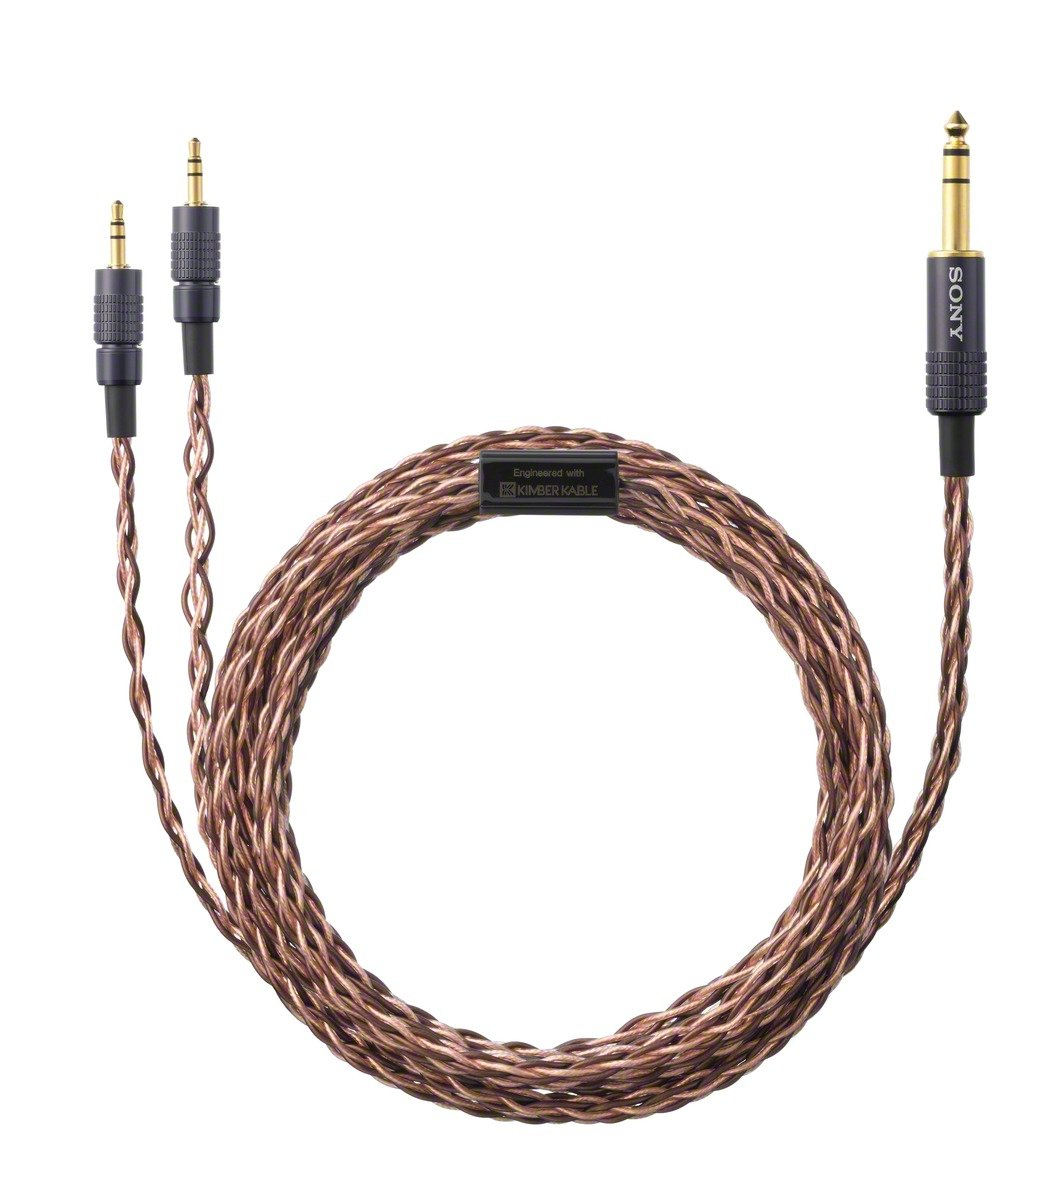 Sony MUCB30UM1 High Performance Home Audio Cable